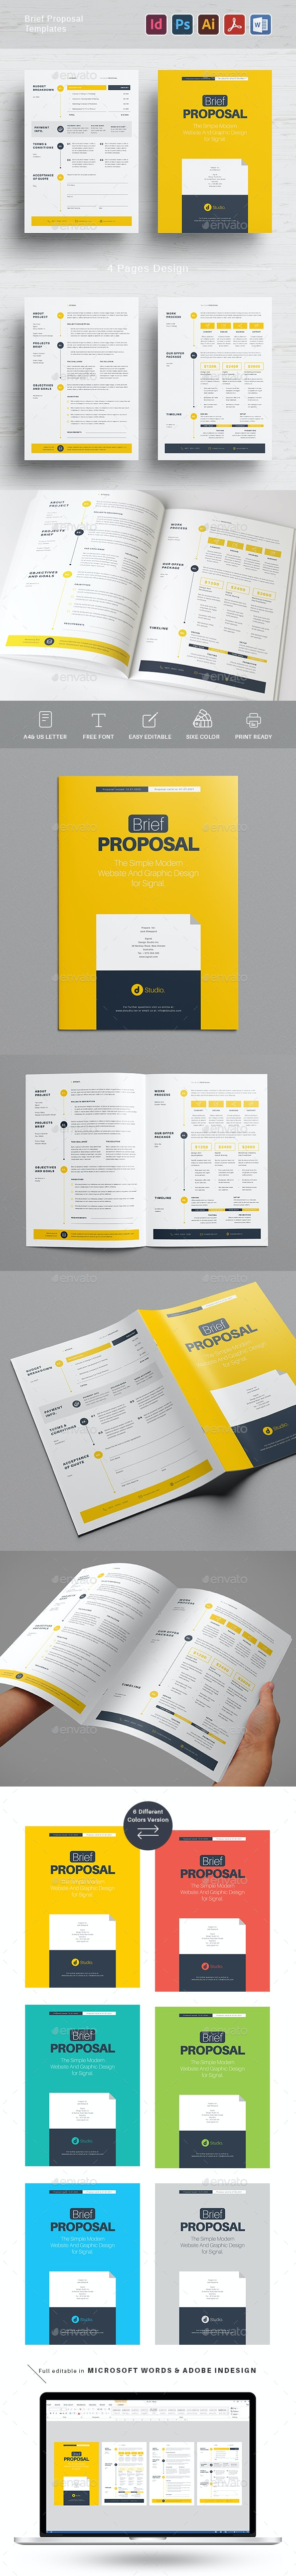 Brief Proposal Templates - Proposals & Invoices Stationery